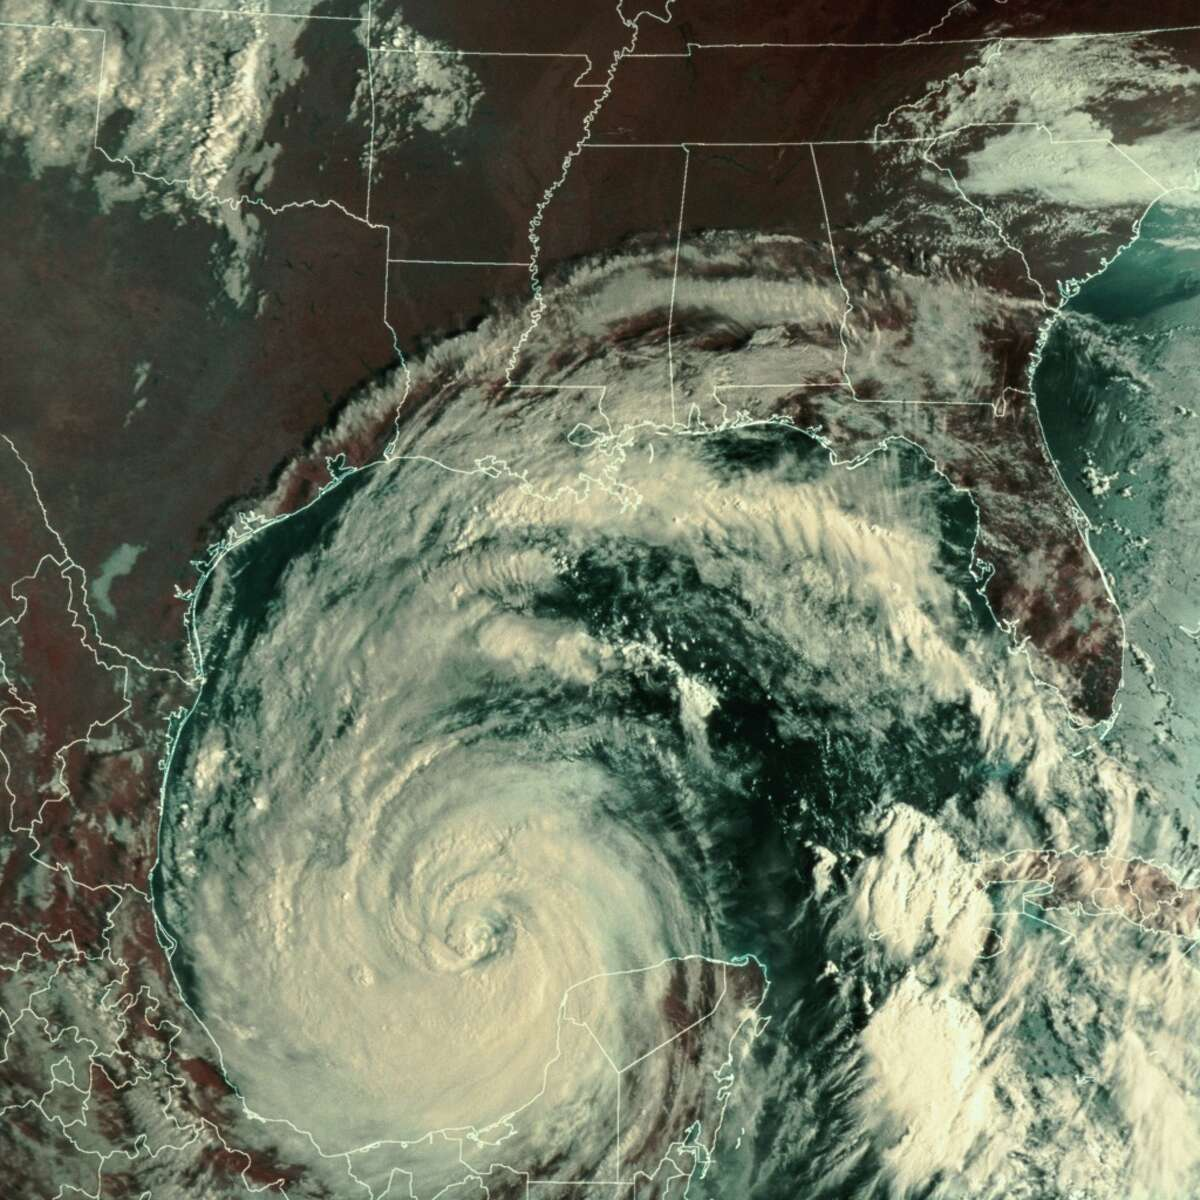 For some reason, many weather watchers start to slowly give up on the hurricane season after Labor Day, but the end of the summer season is rarely the end of hurricane season for Texas. The state has been battered on dozens of occasions with hurricanes and tropical storms well into October. Here are some of the state's worst late-season hurricanes.